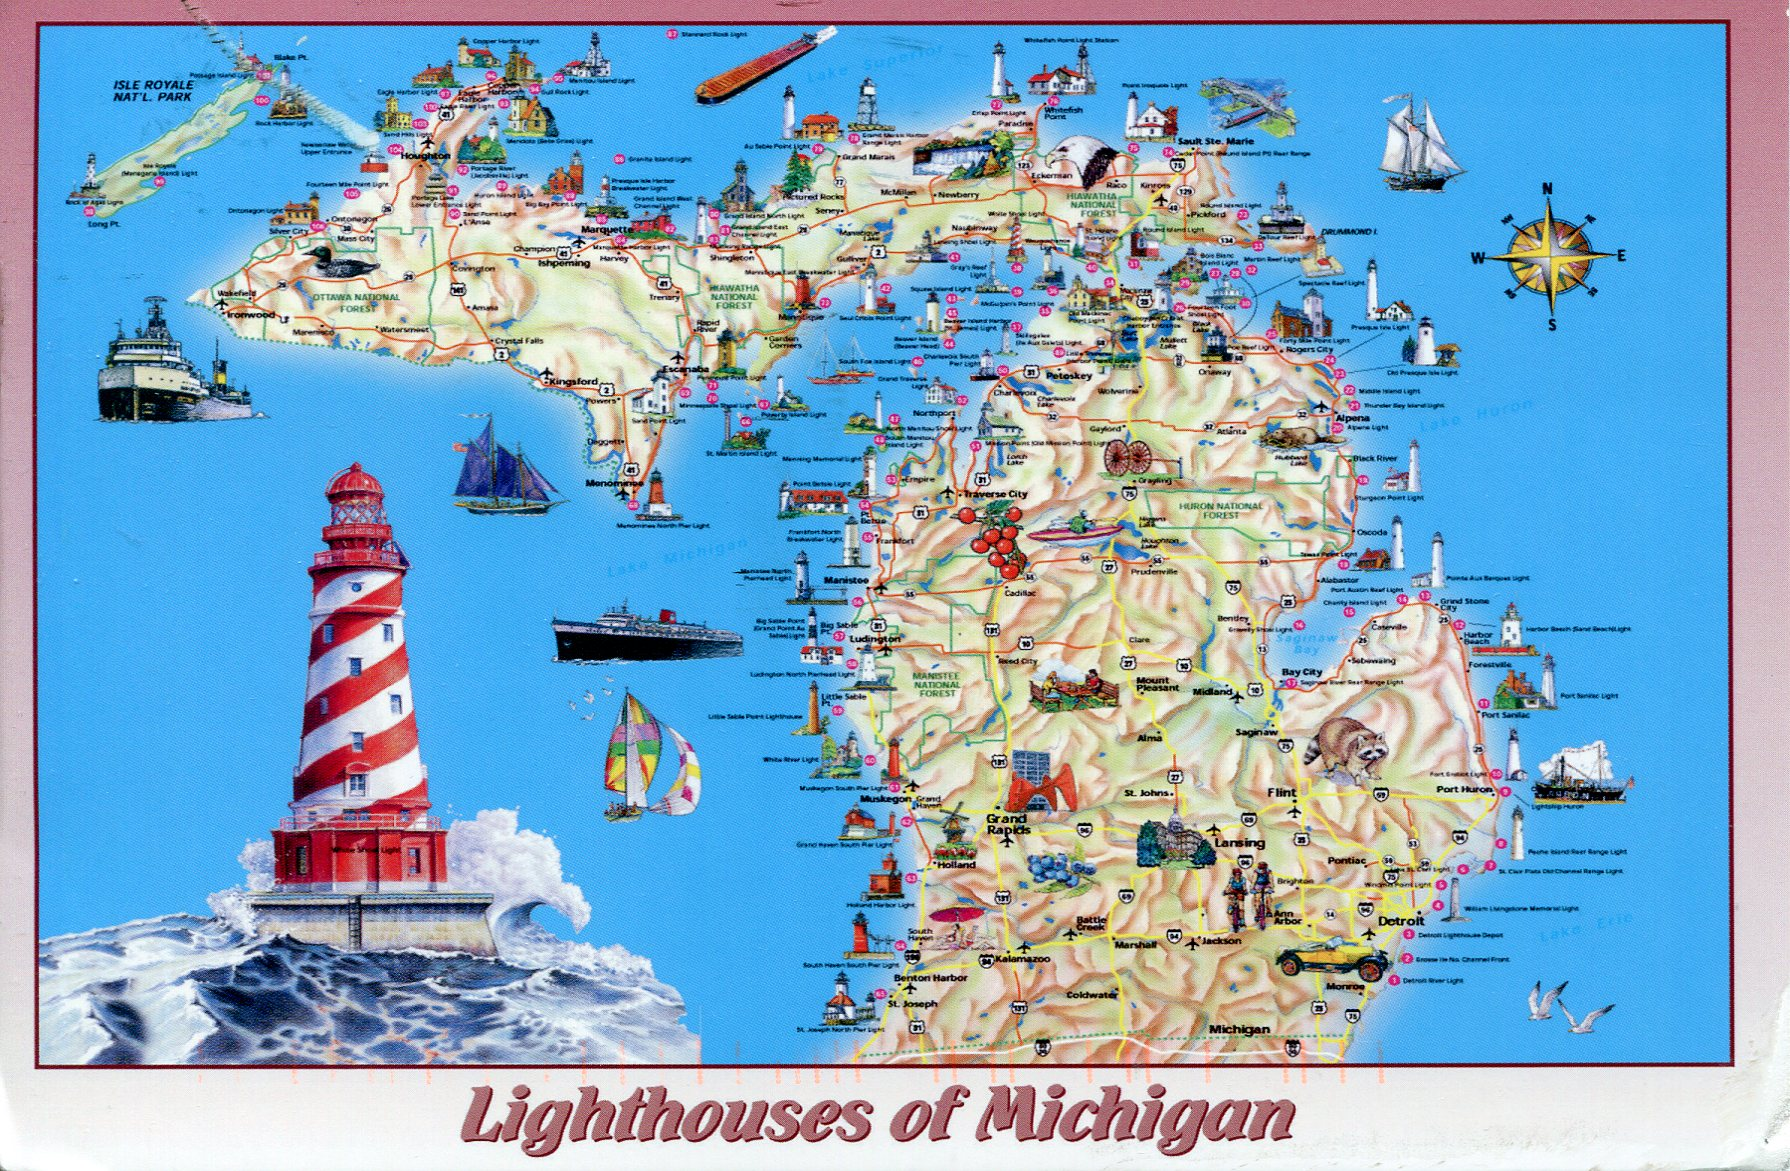 Lighthouses Of Michigan Map Remembering Letters And Postcards - Norway lighthouses map